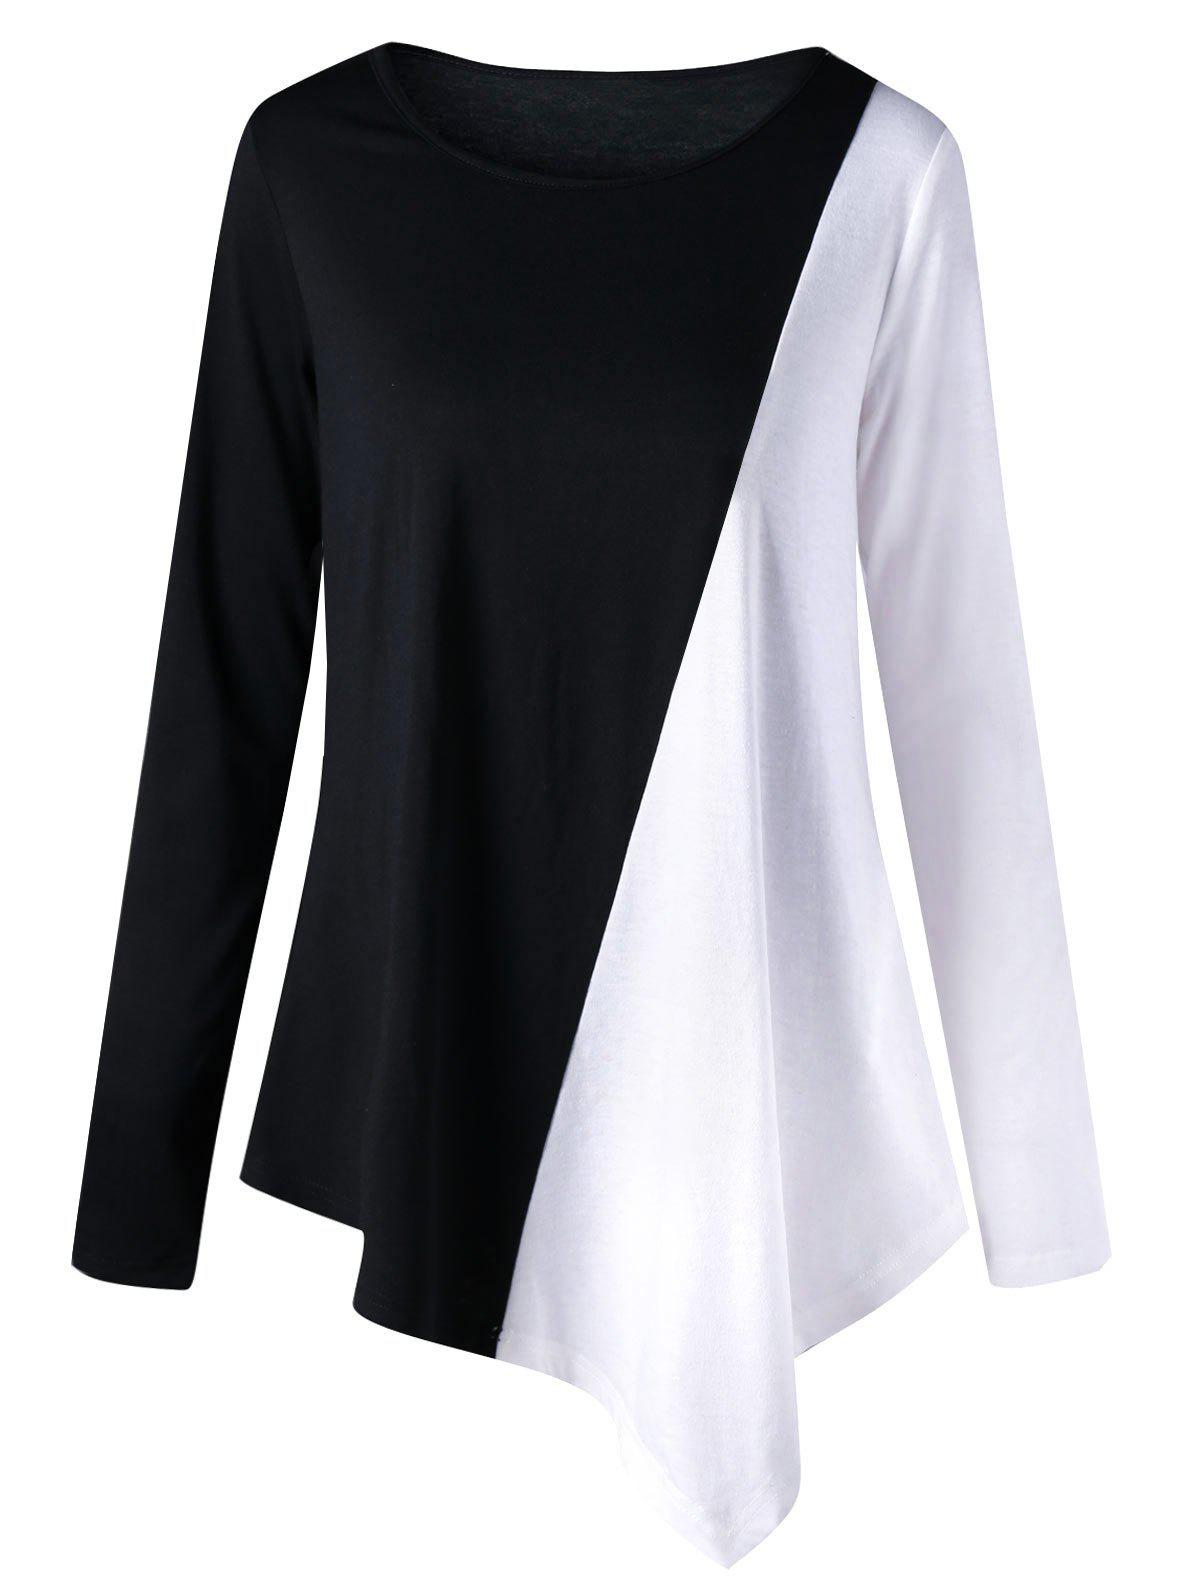 Long Sleeve Two Tone Color Asymmetric TopWOMEN<br><br>Size: 2XL; Color: WHITE AND BLACK; Material: Polyester,Spandex; Shirt Length: Long; Sleeve Length: Full; Collar: Round Neck; Style: Fashion; Pattern Type: Others; Season: Fall,Spring; Weight: 0.2560kg; Package Contents: 1 x Top;